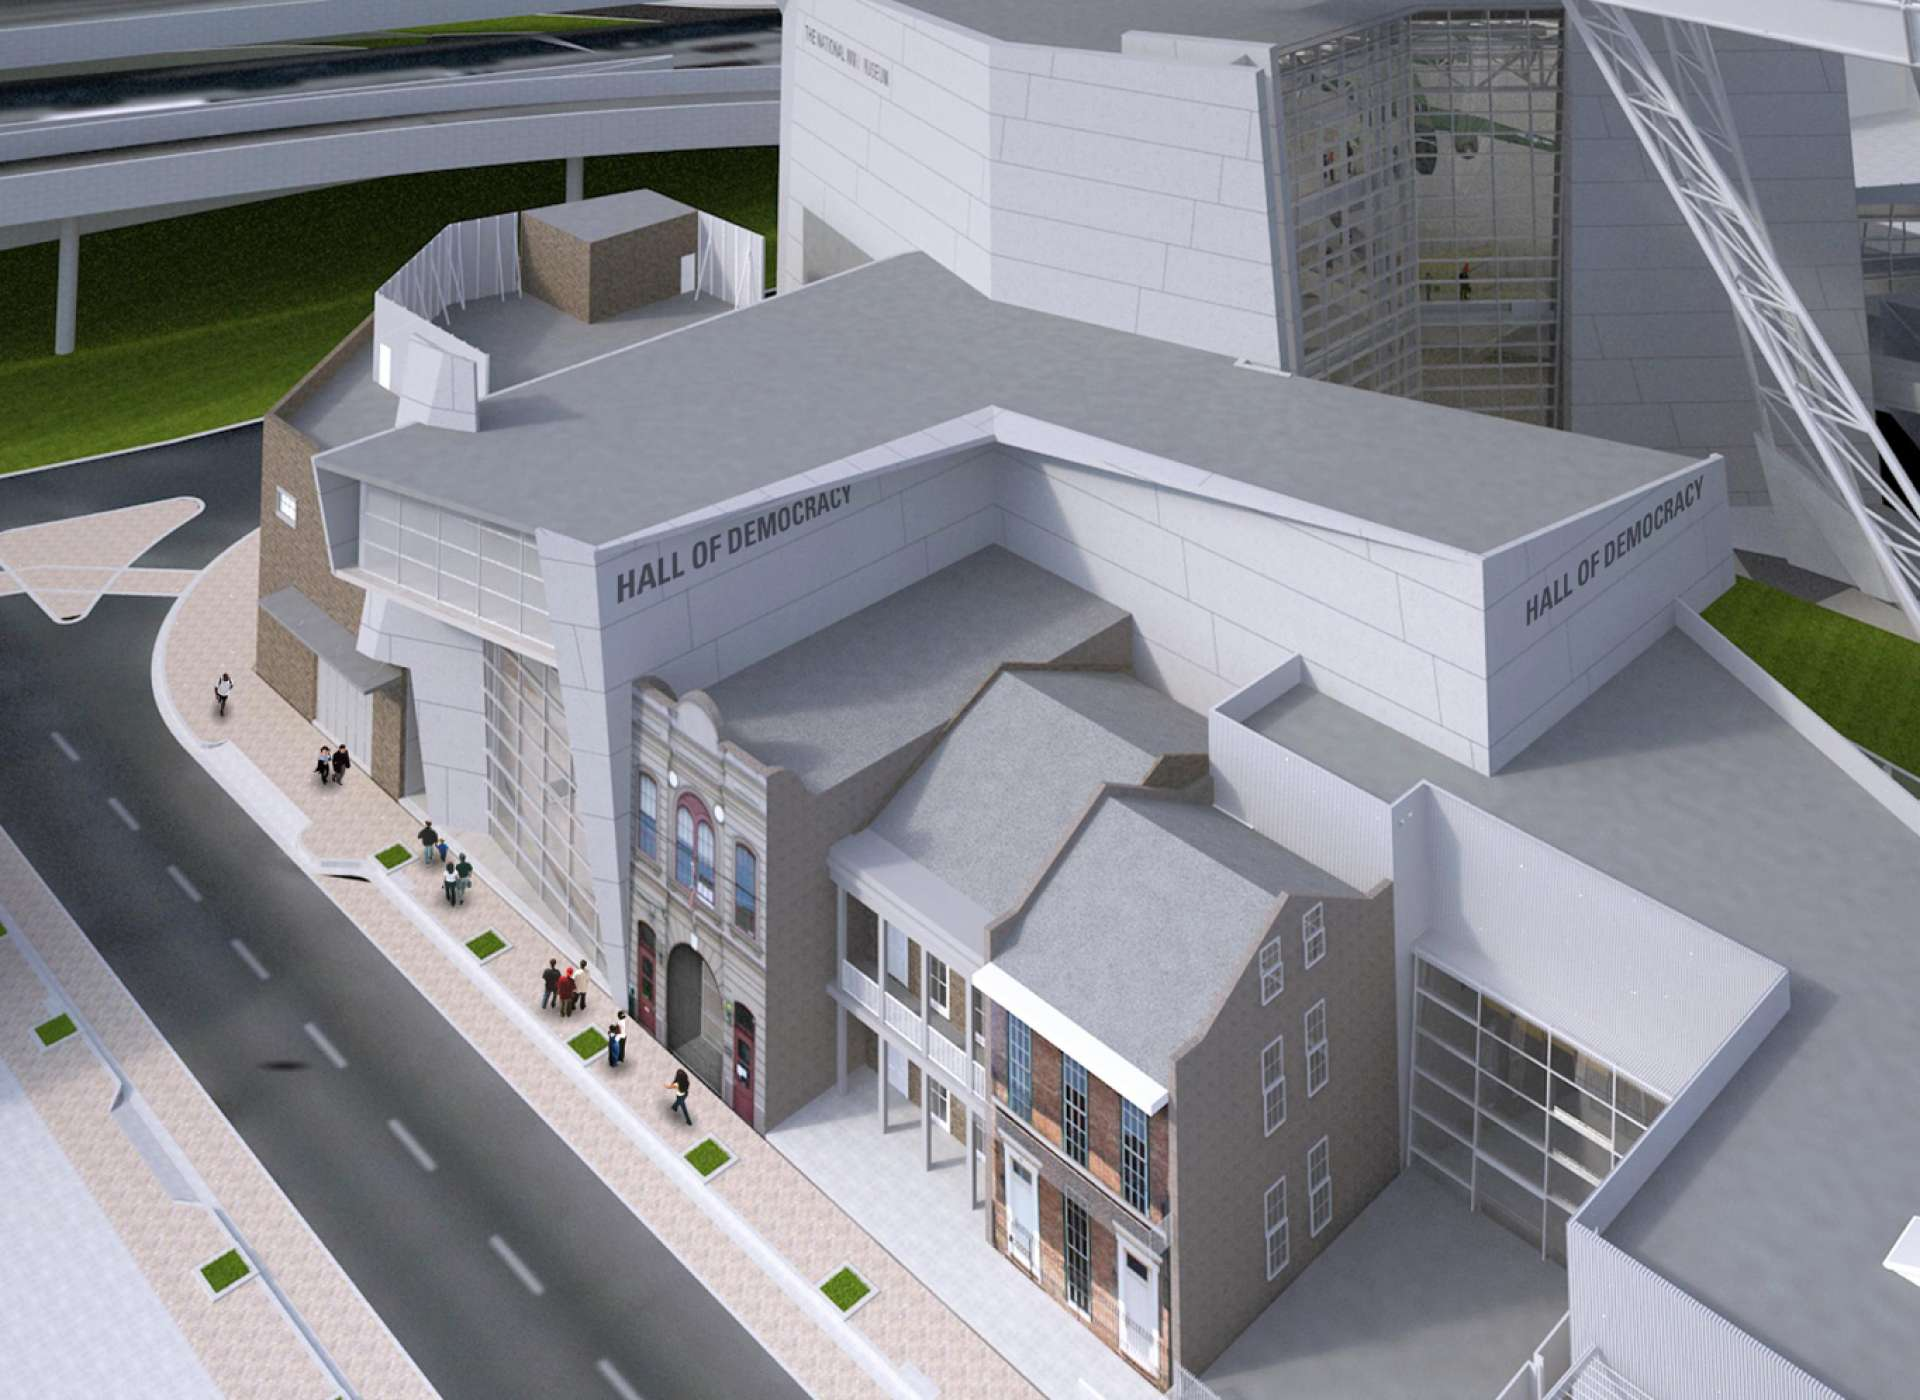 hall of democracy rendering